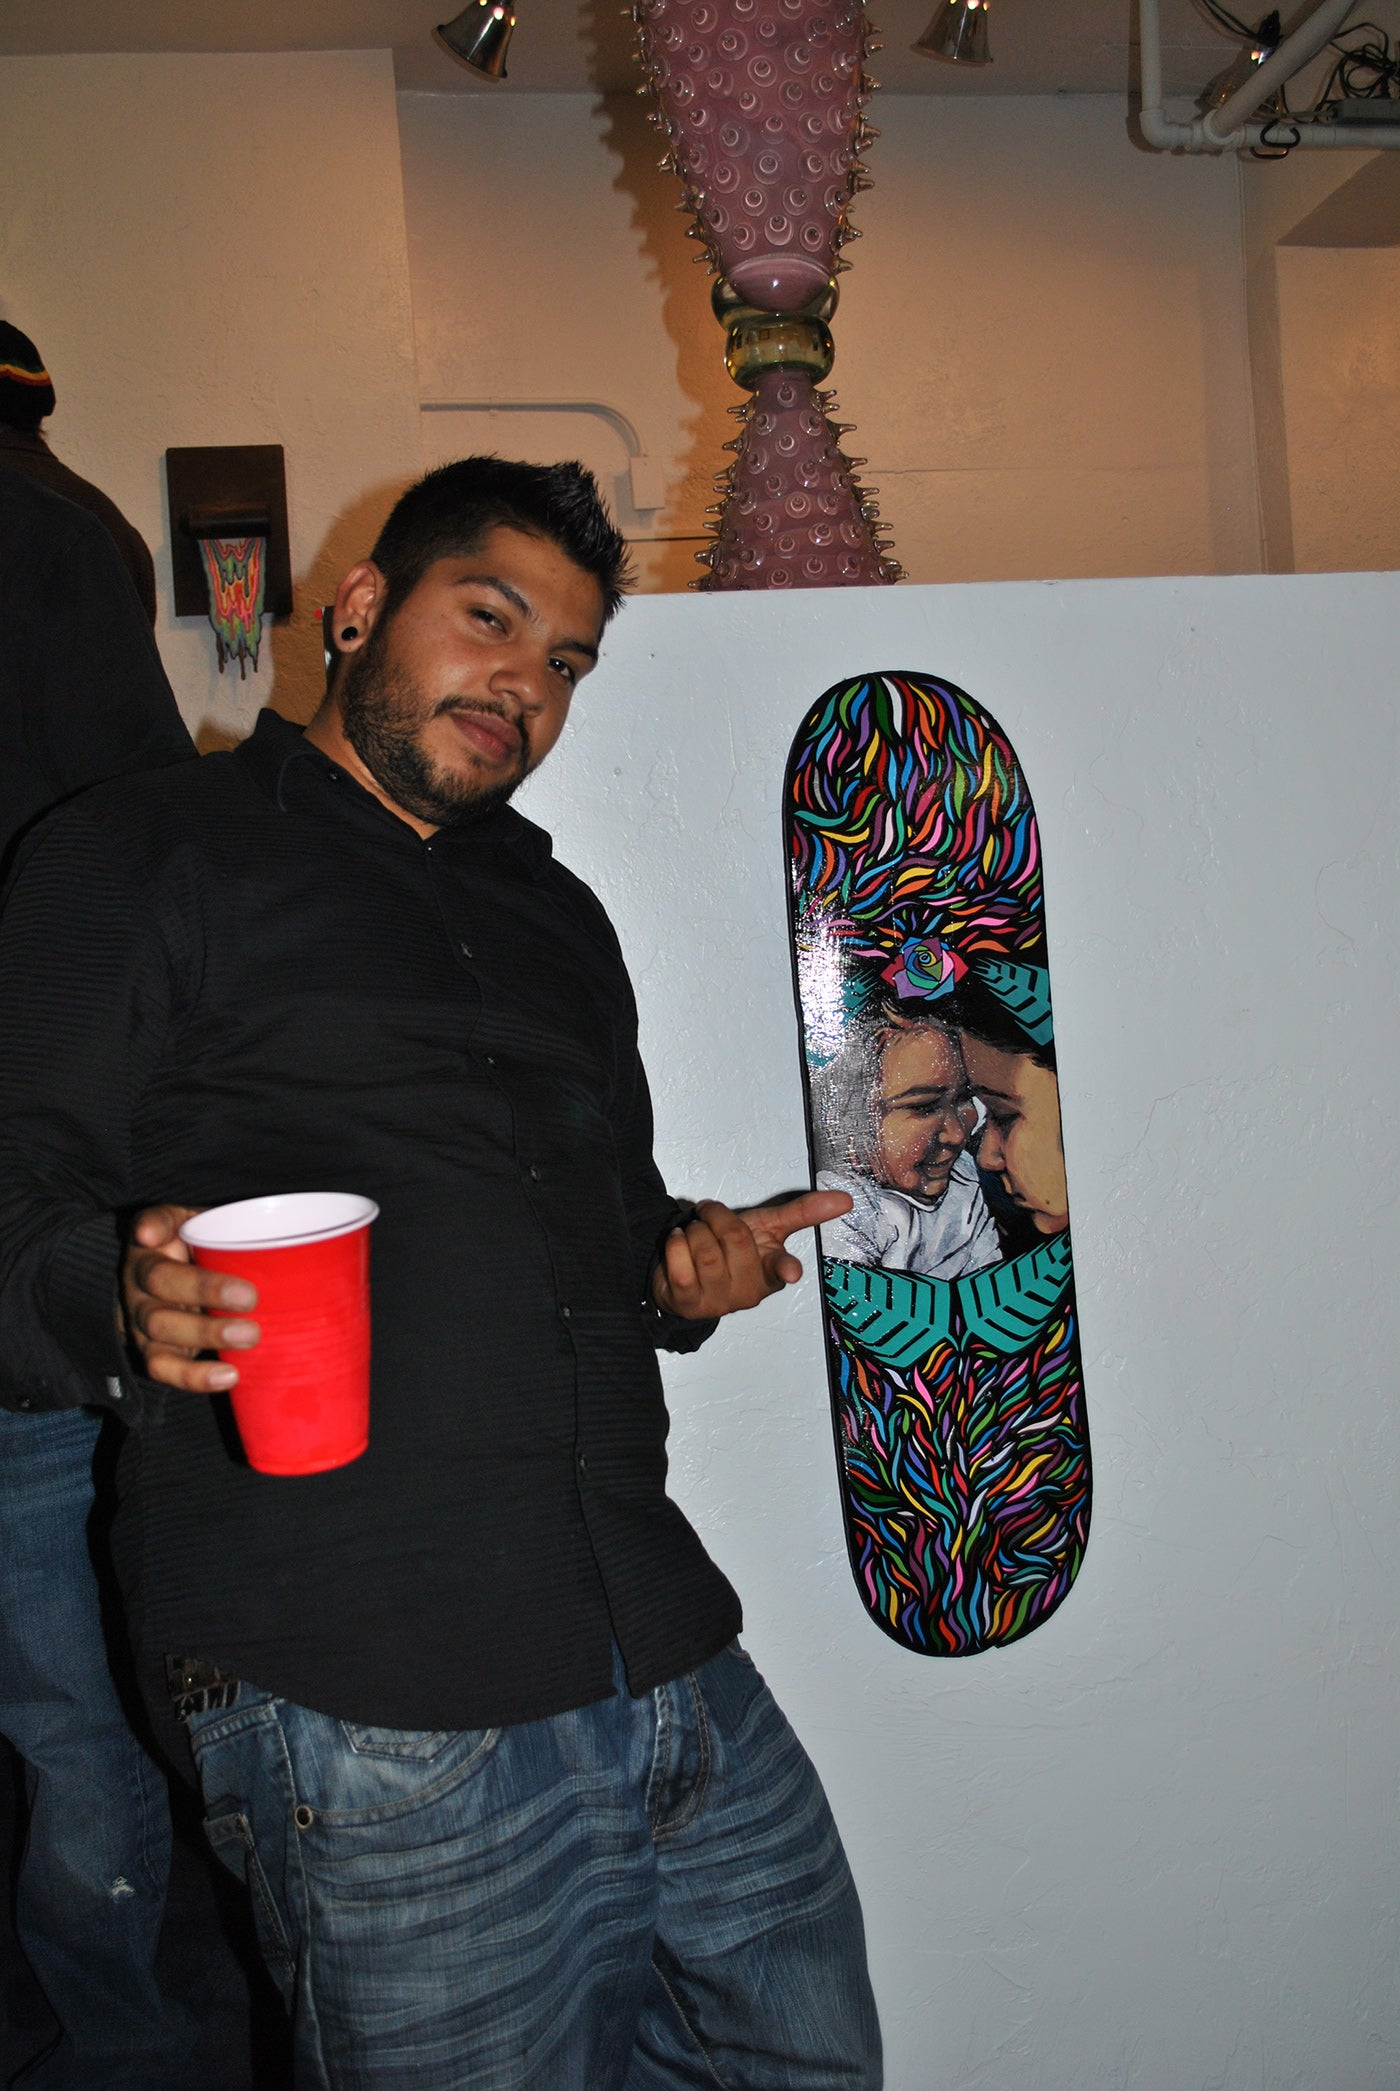 Artist standing in front of his artwork holding a cup